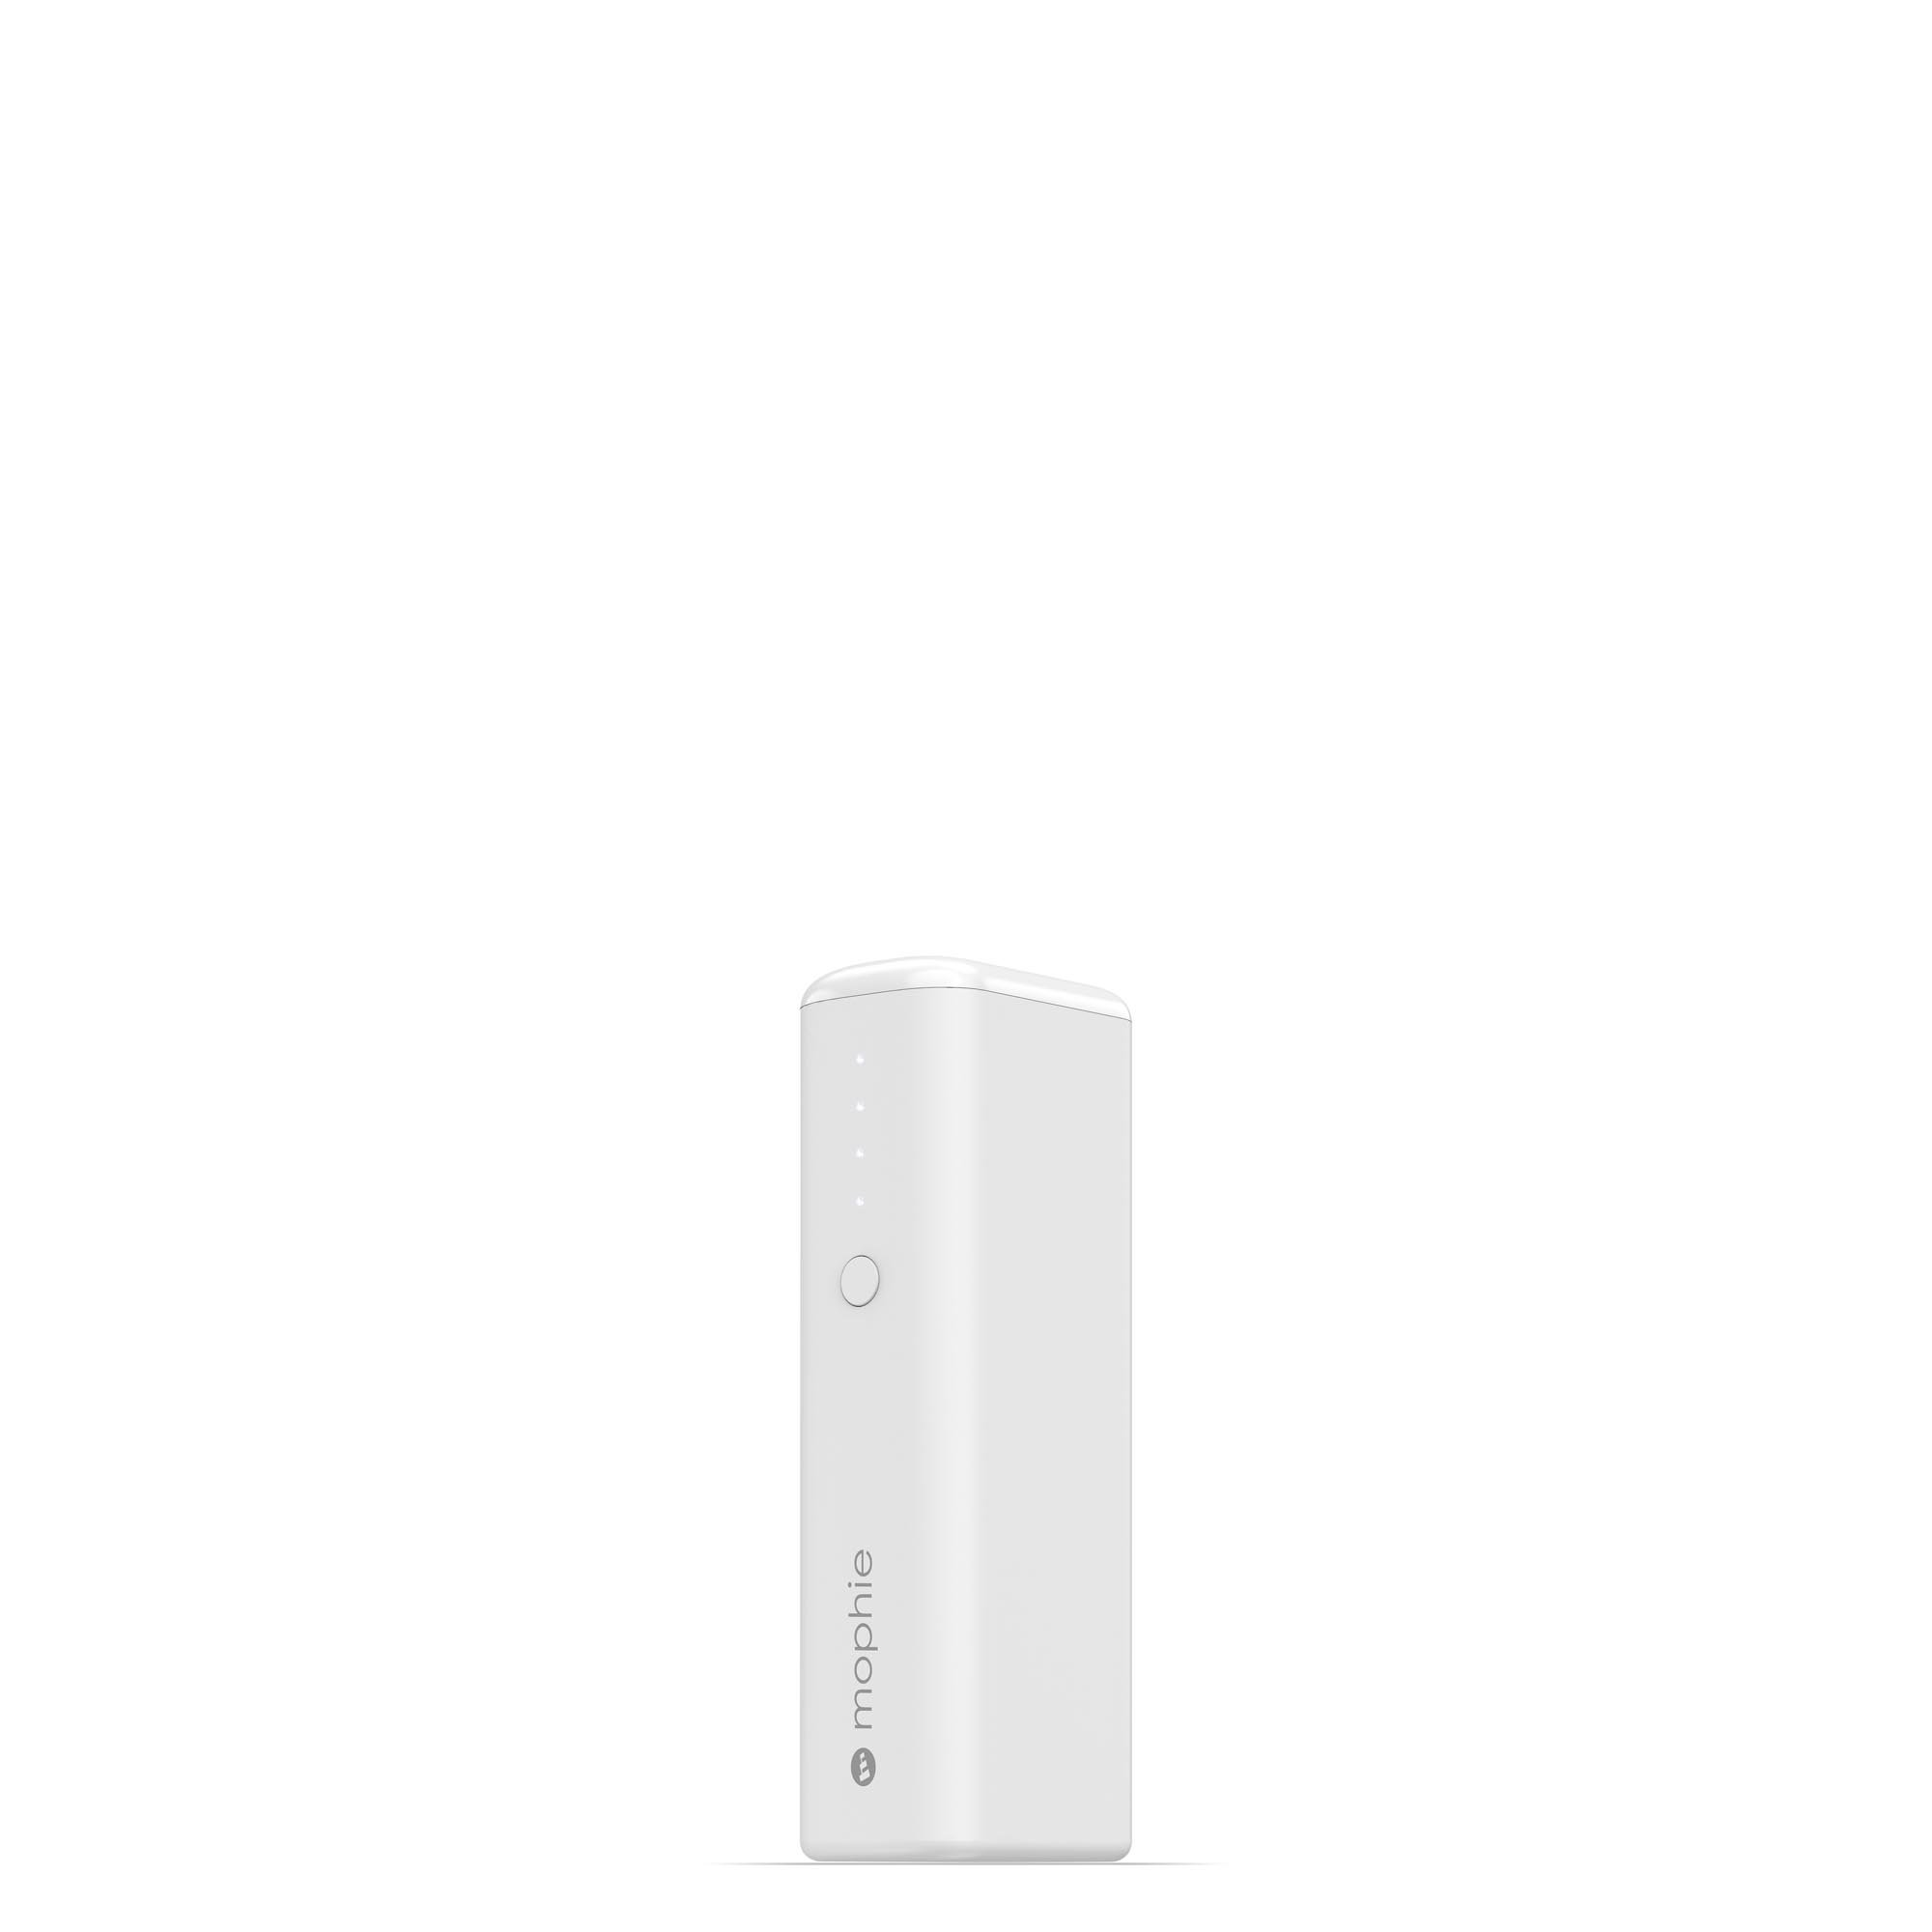 mophie Power Boost Mini Universal External Battery - 1 Charge (2,600mAh ) - White